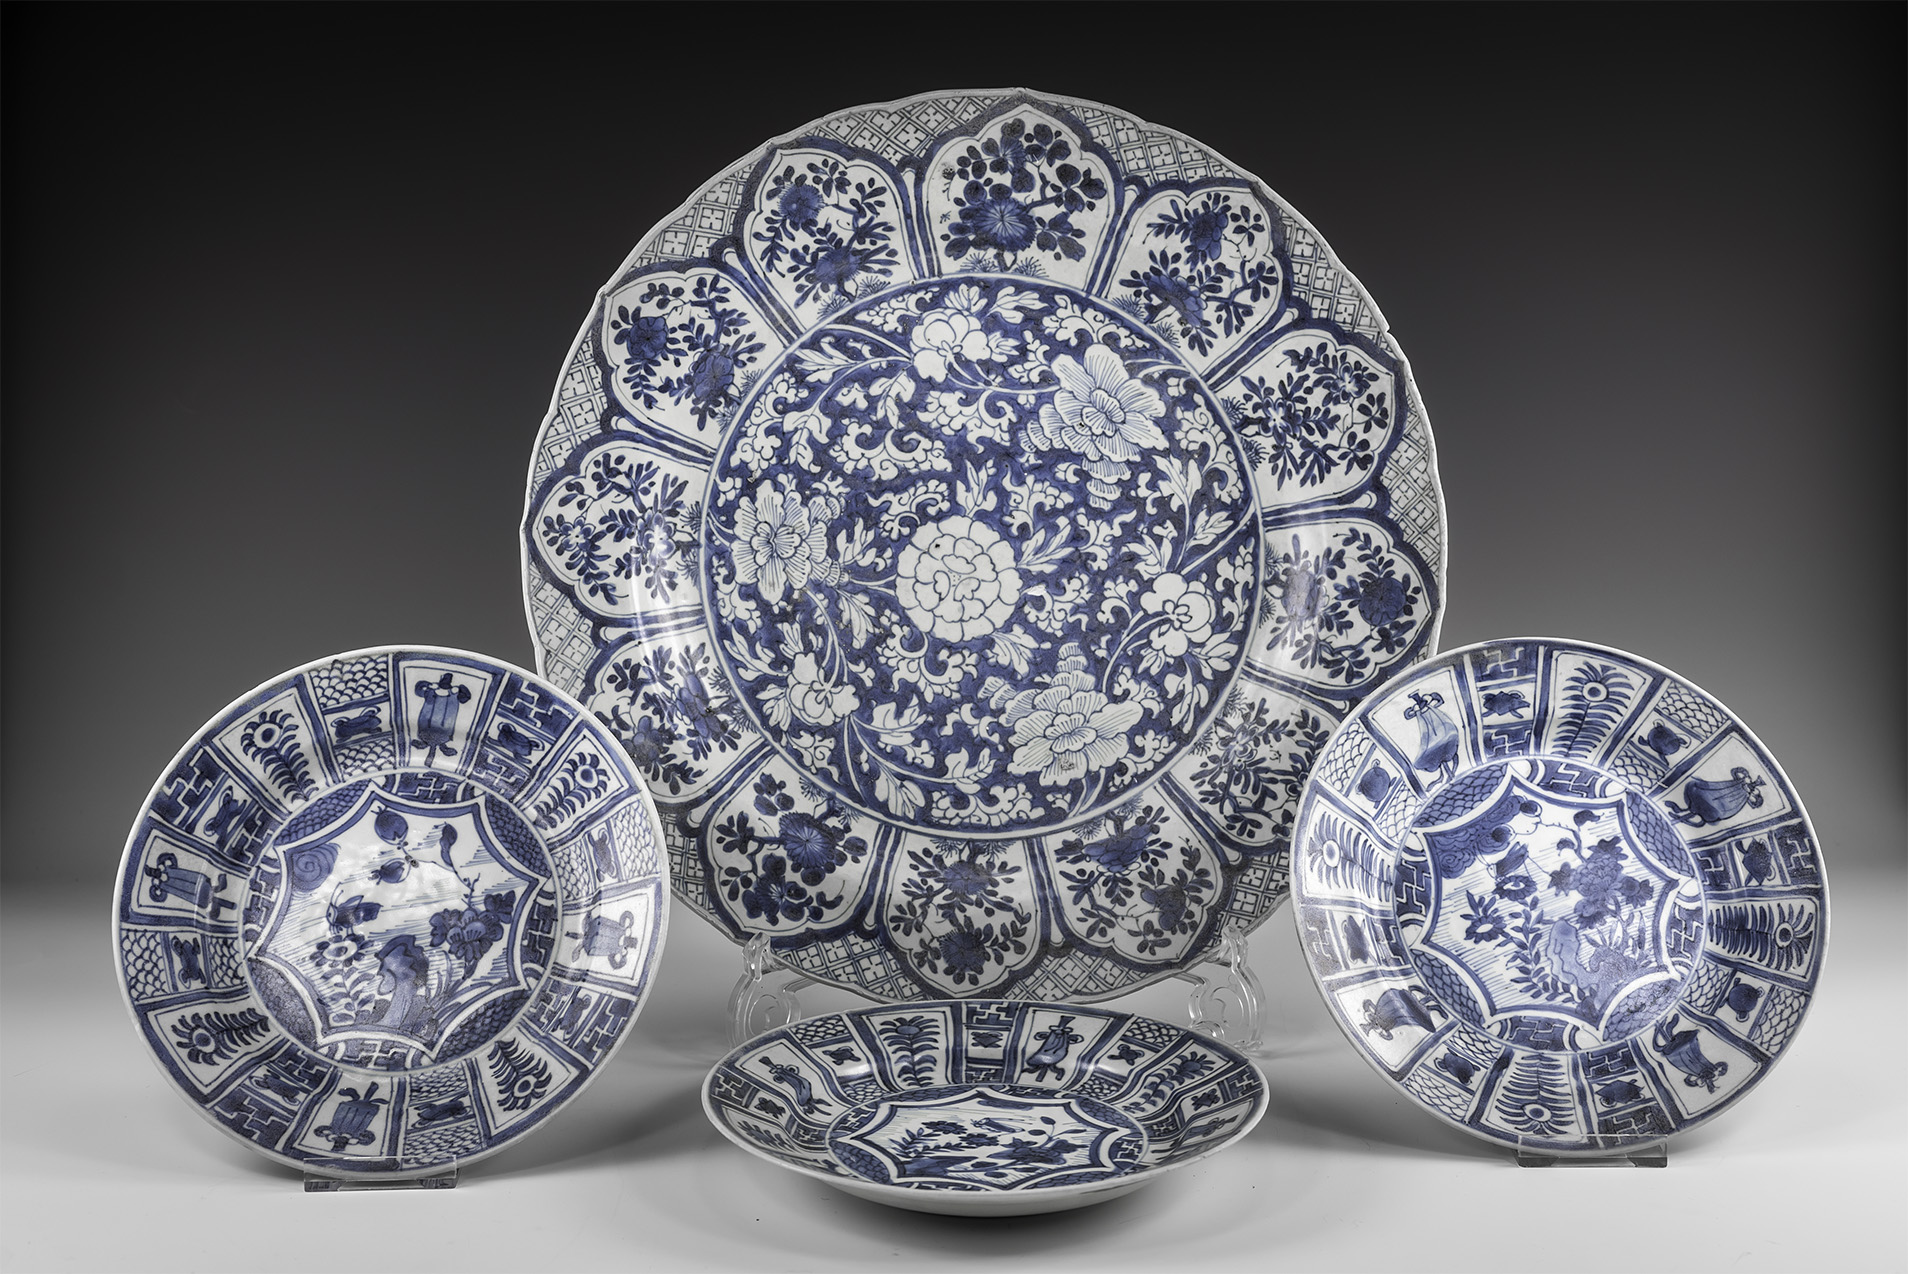 Chinese Blue and White Export Ware Charger with Dishes